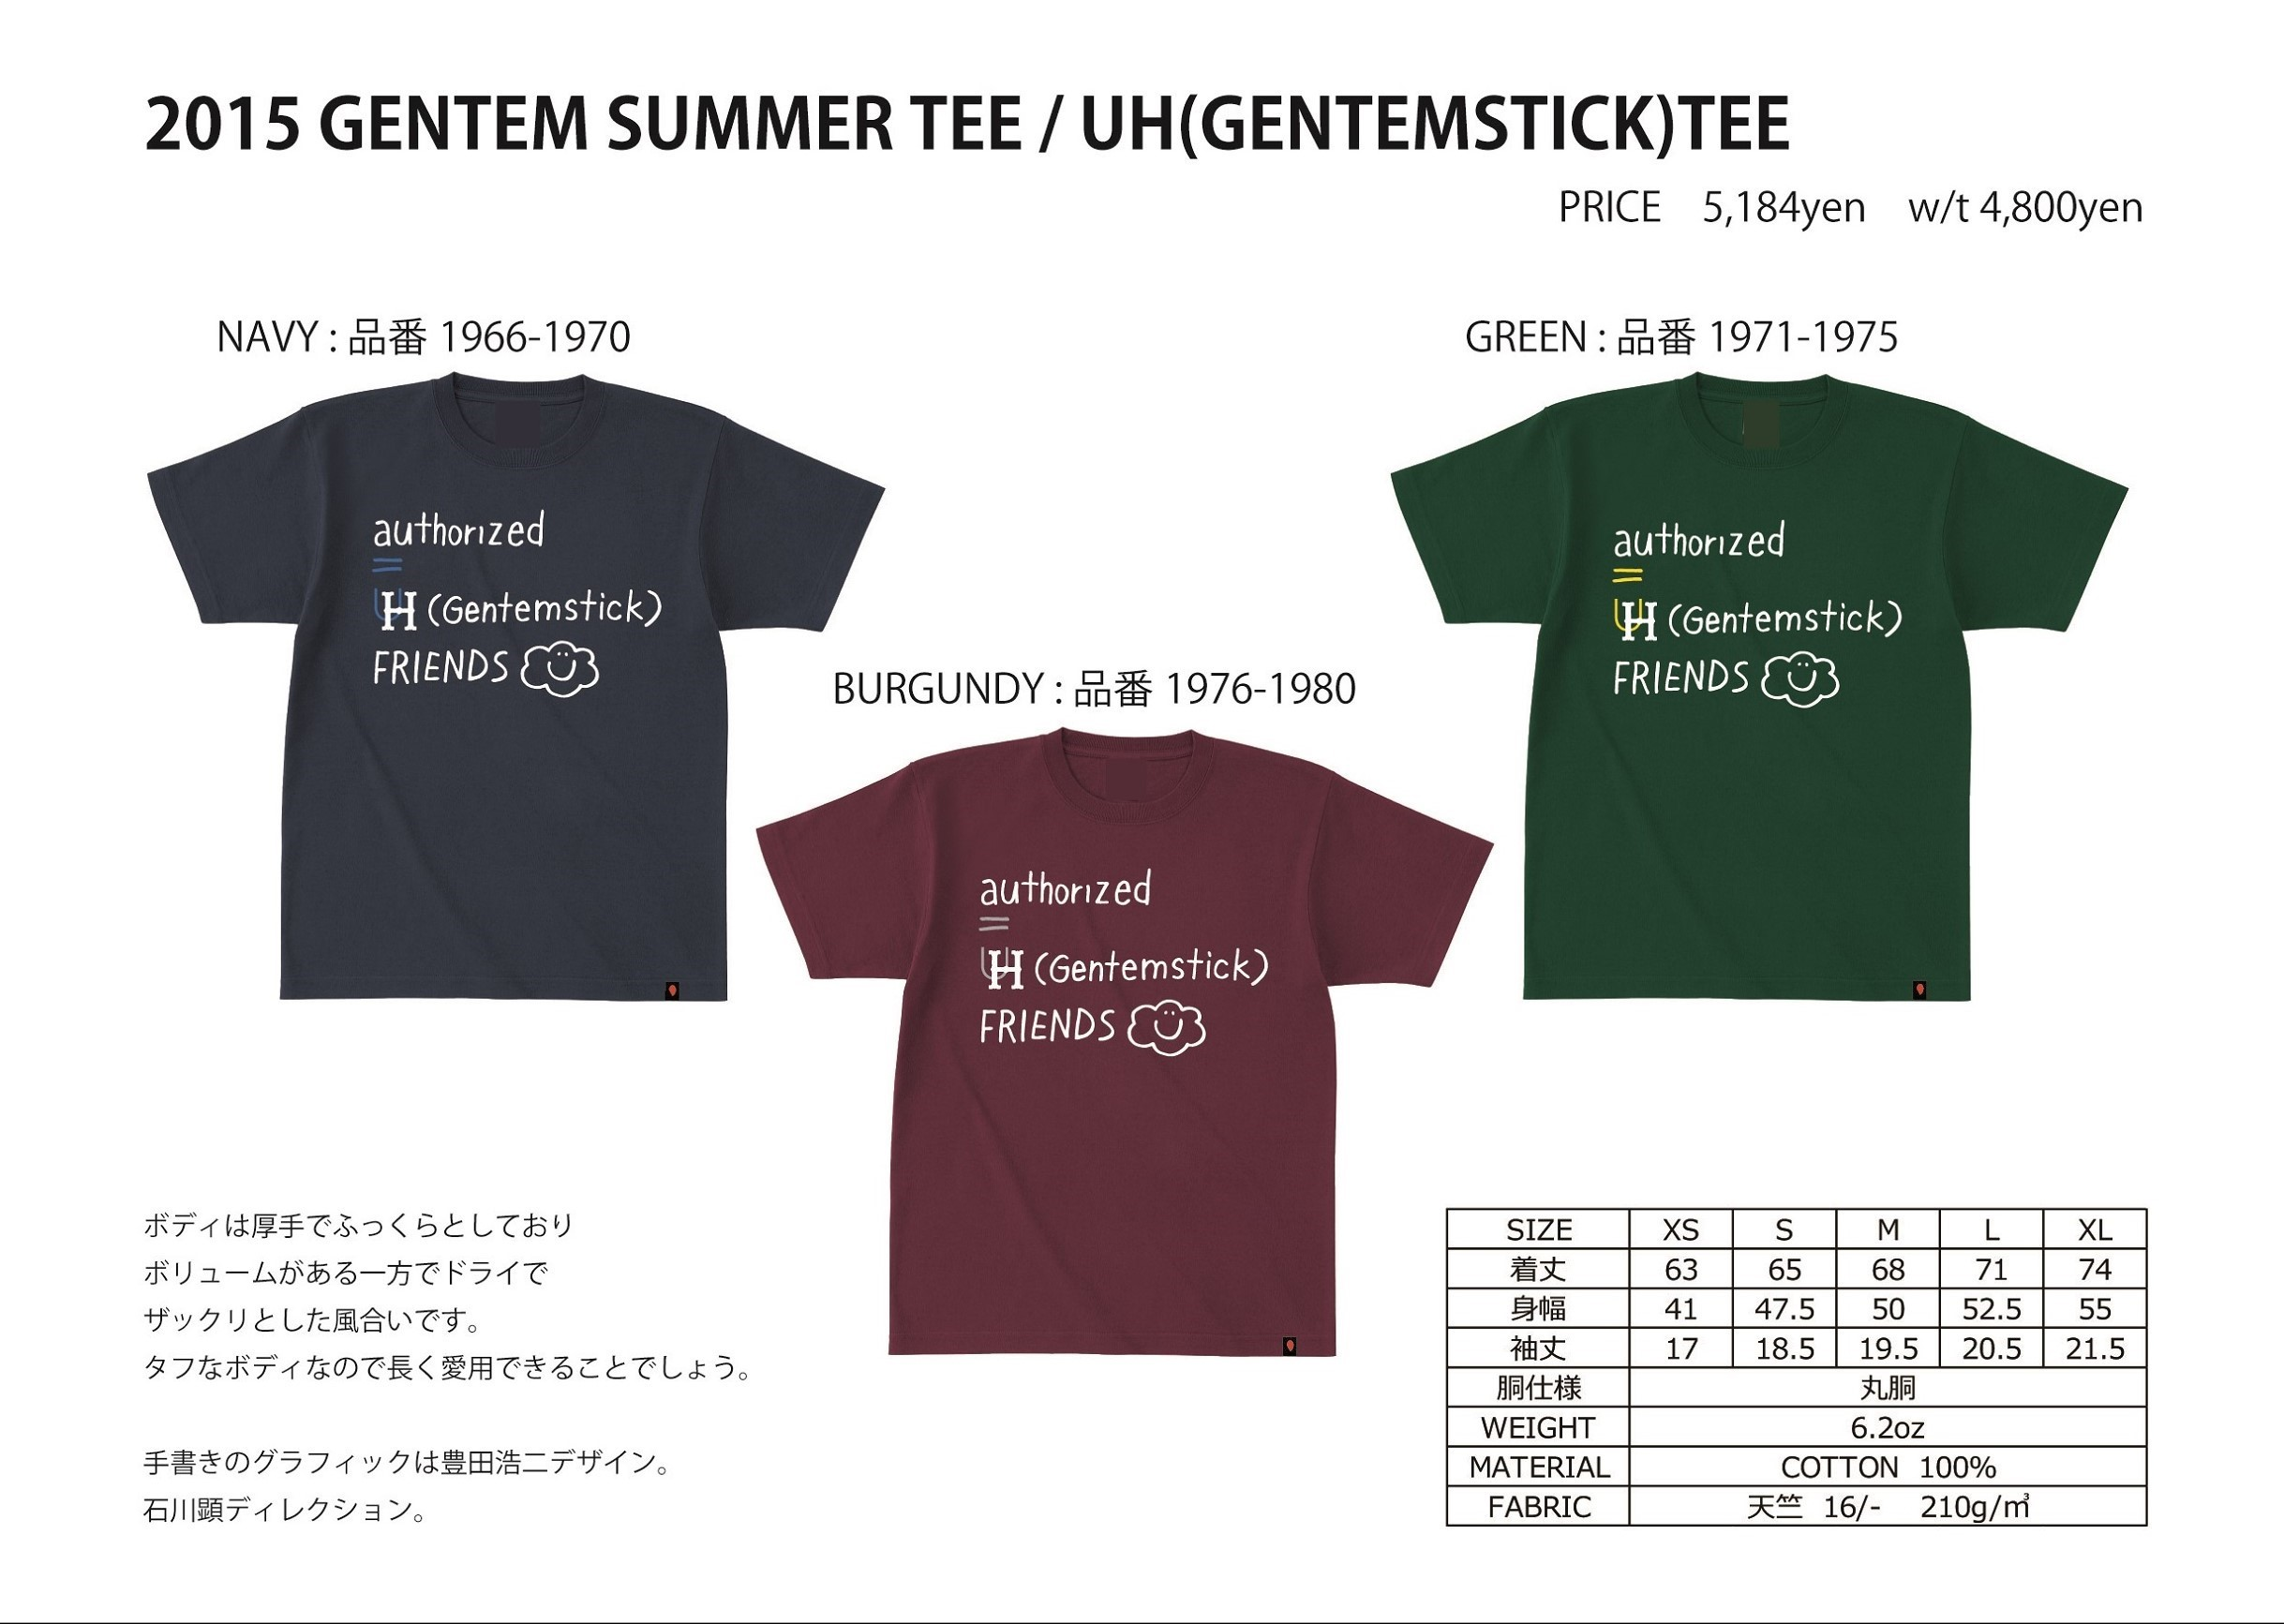 15-16summerTee UH(gentemstick)tee